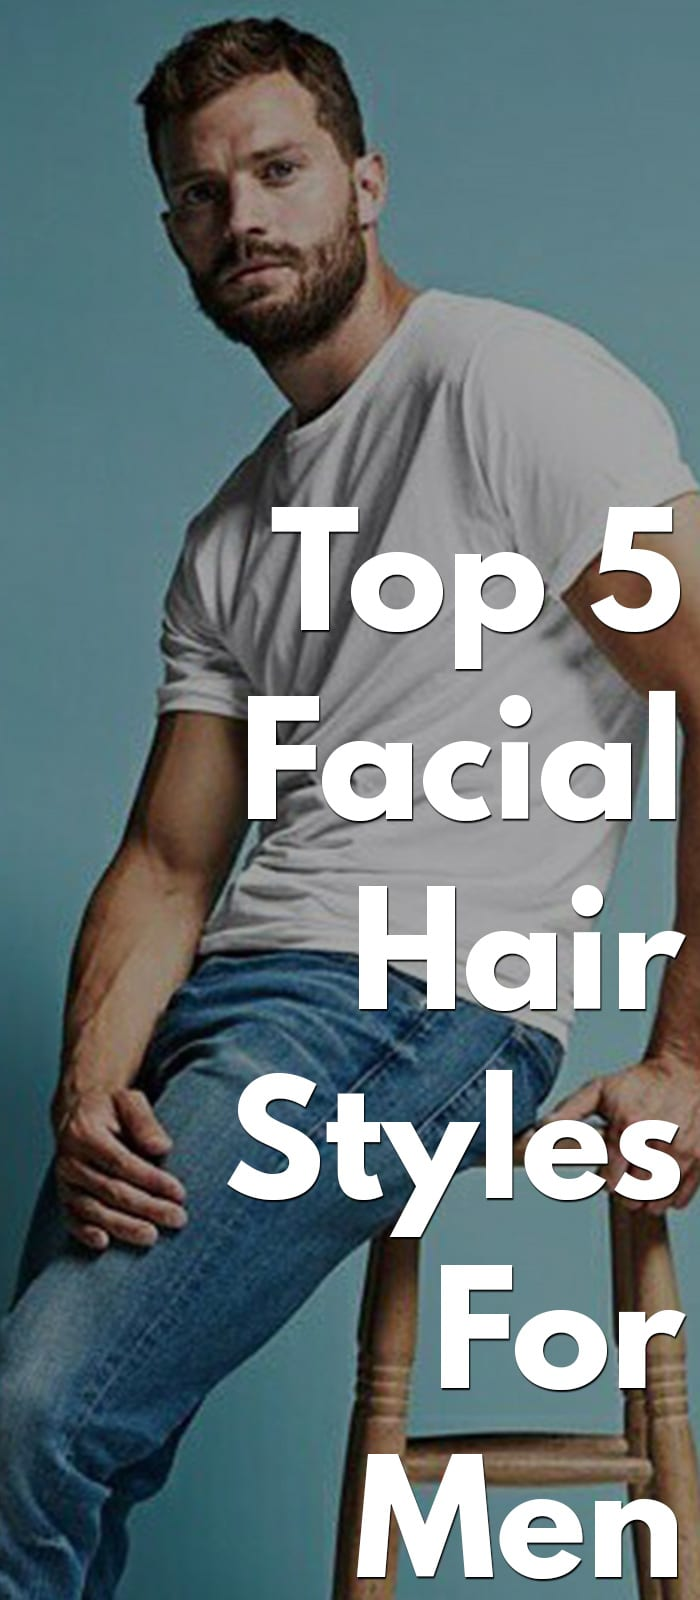 Top 5 Facial Hair Styles for Men